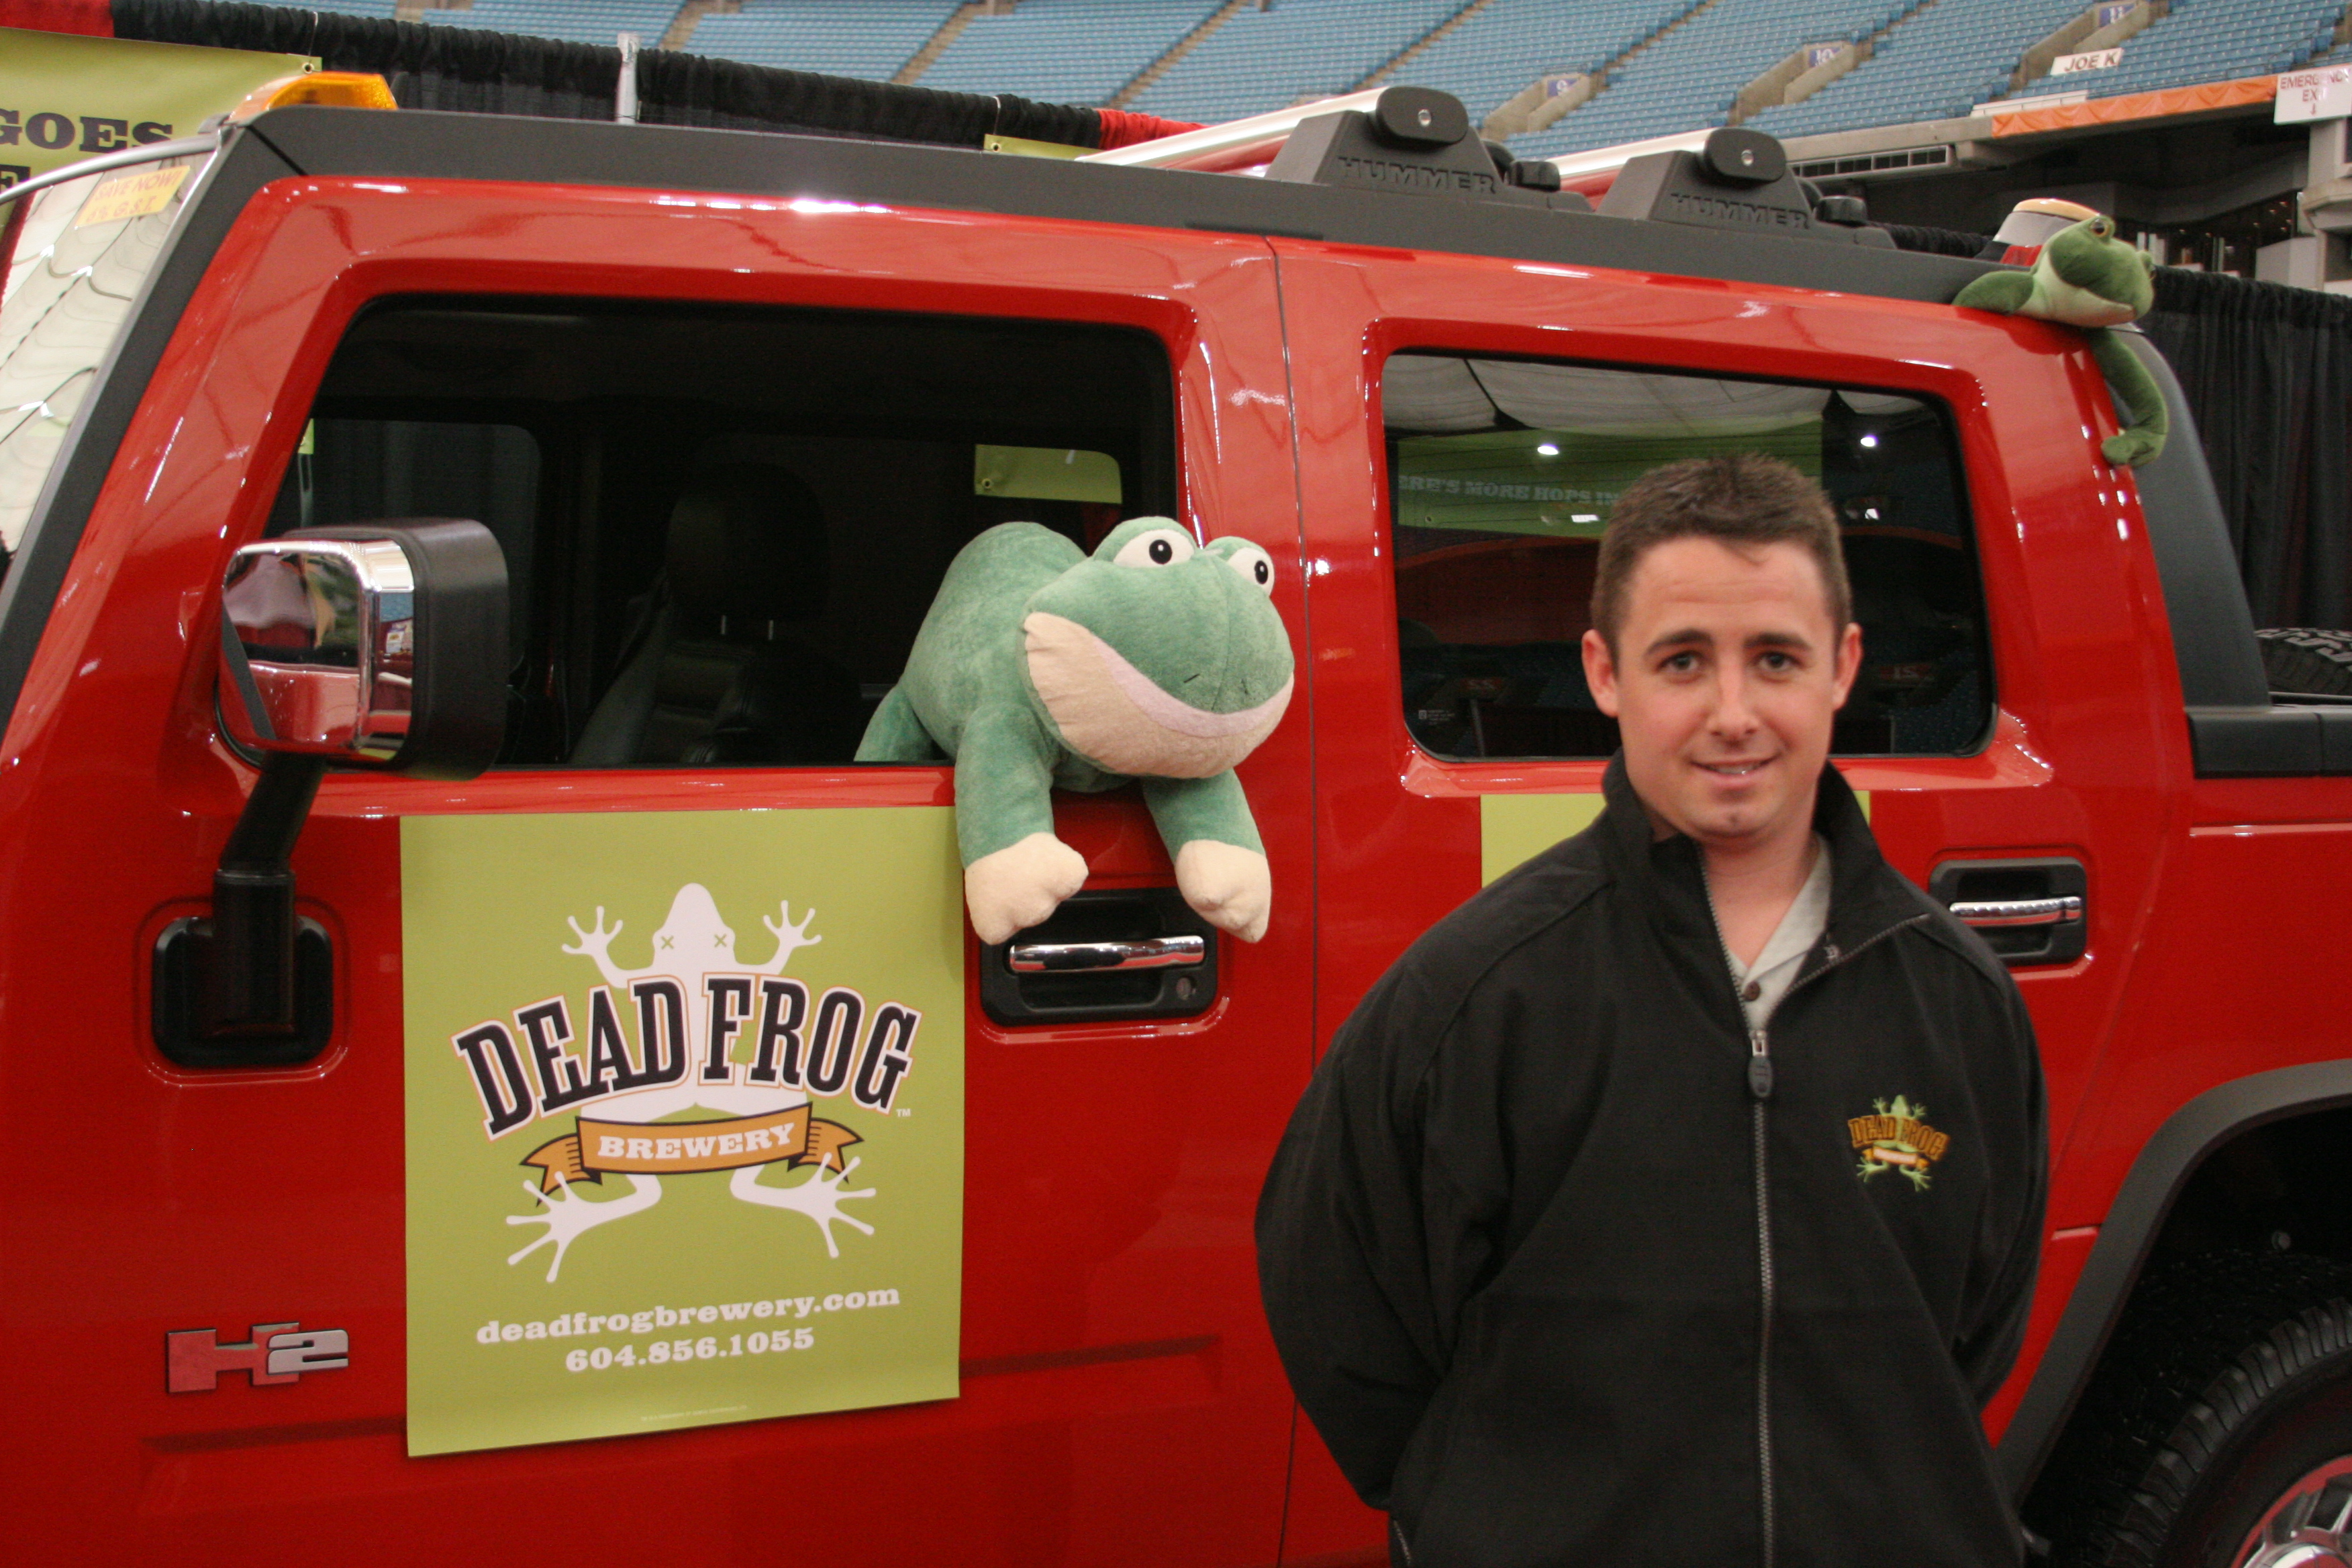 Dead frog beer - eat vancouver 2006 - 2 photo